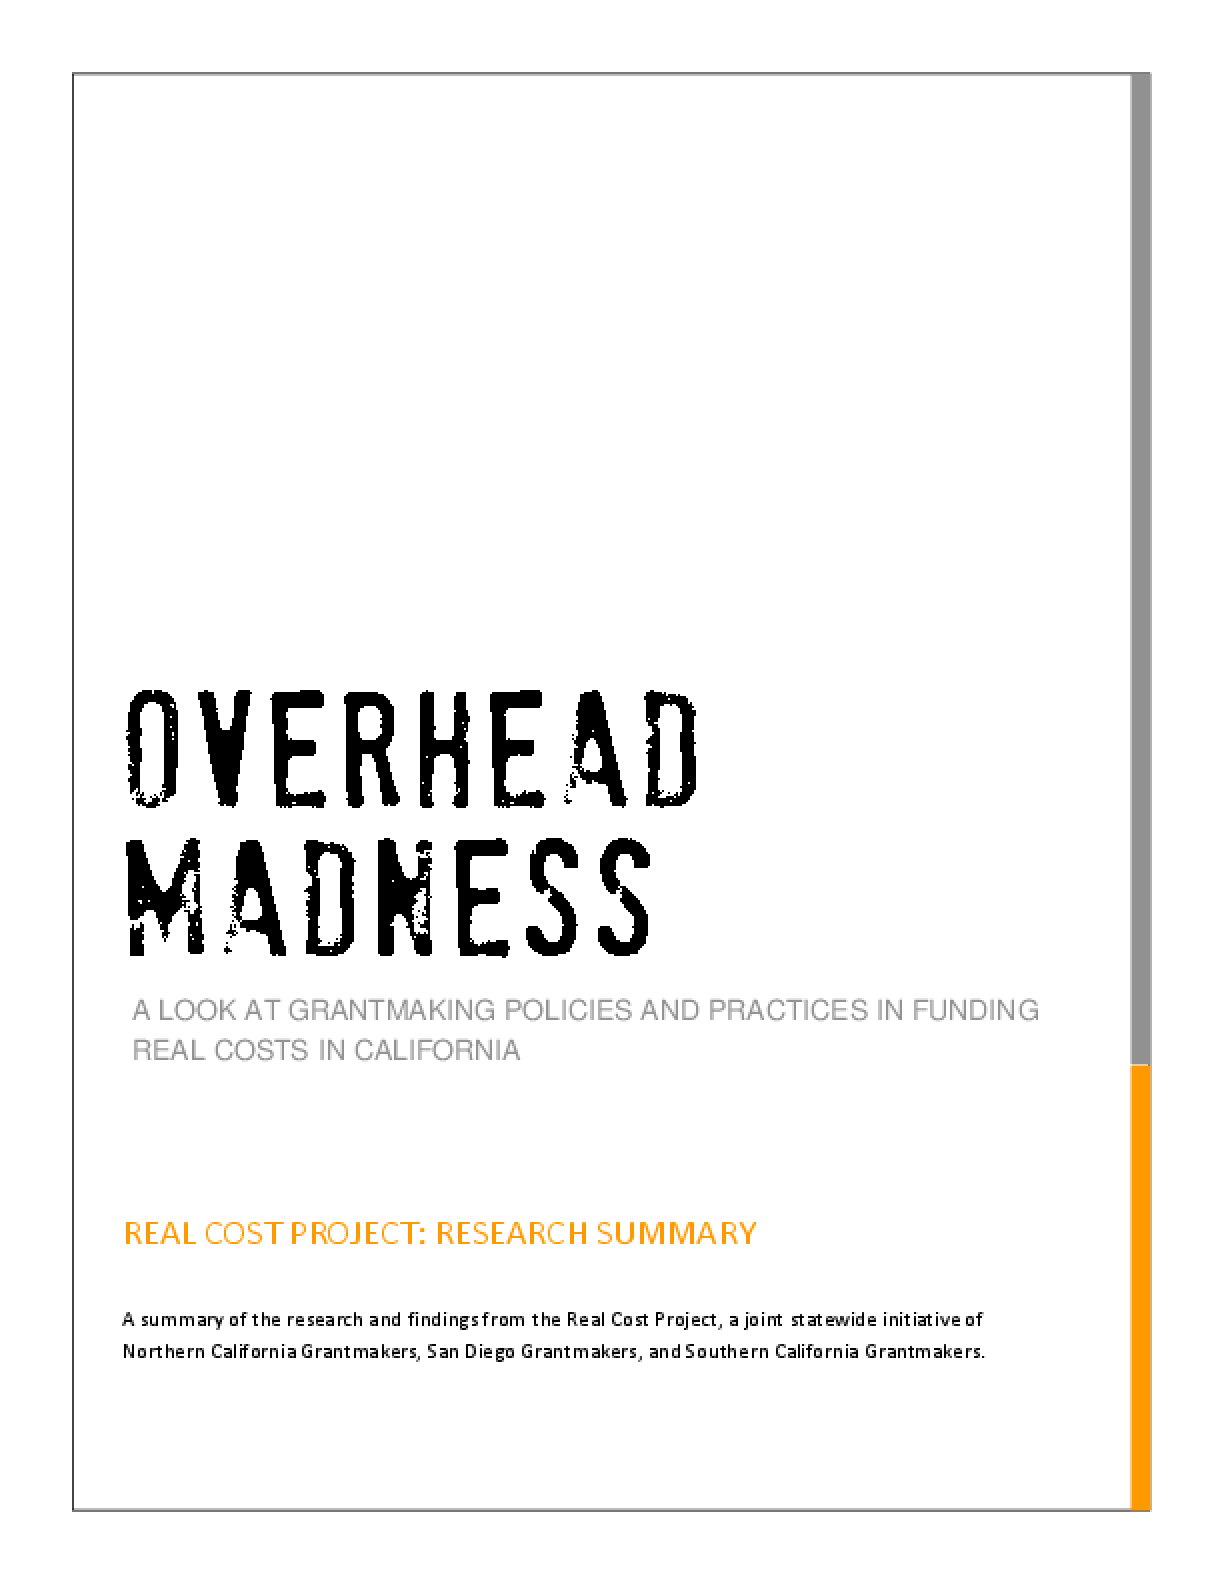 Overhead Madness: A Look at Grantmaking Policies and Practices in Funding Real Costs in California